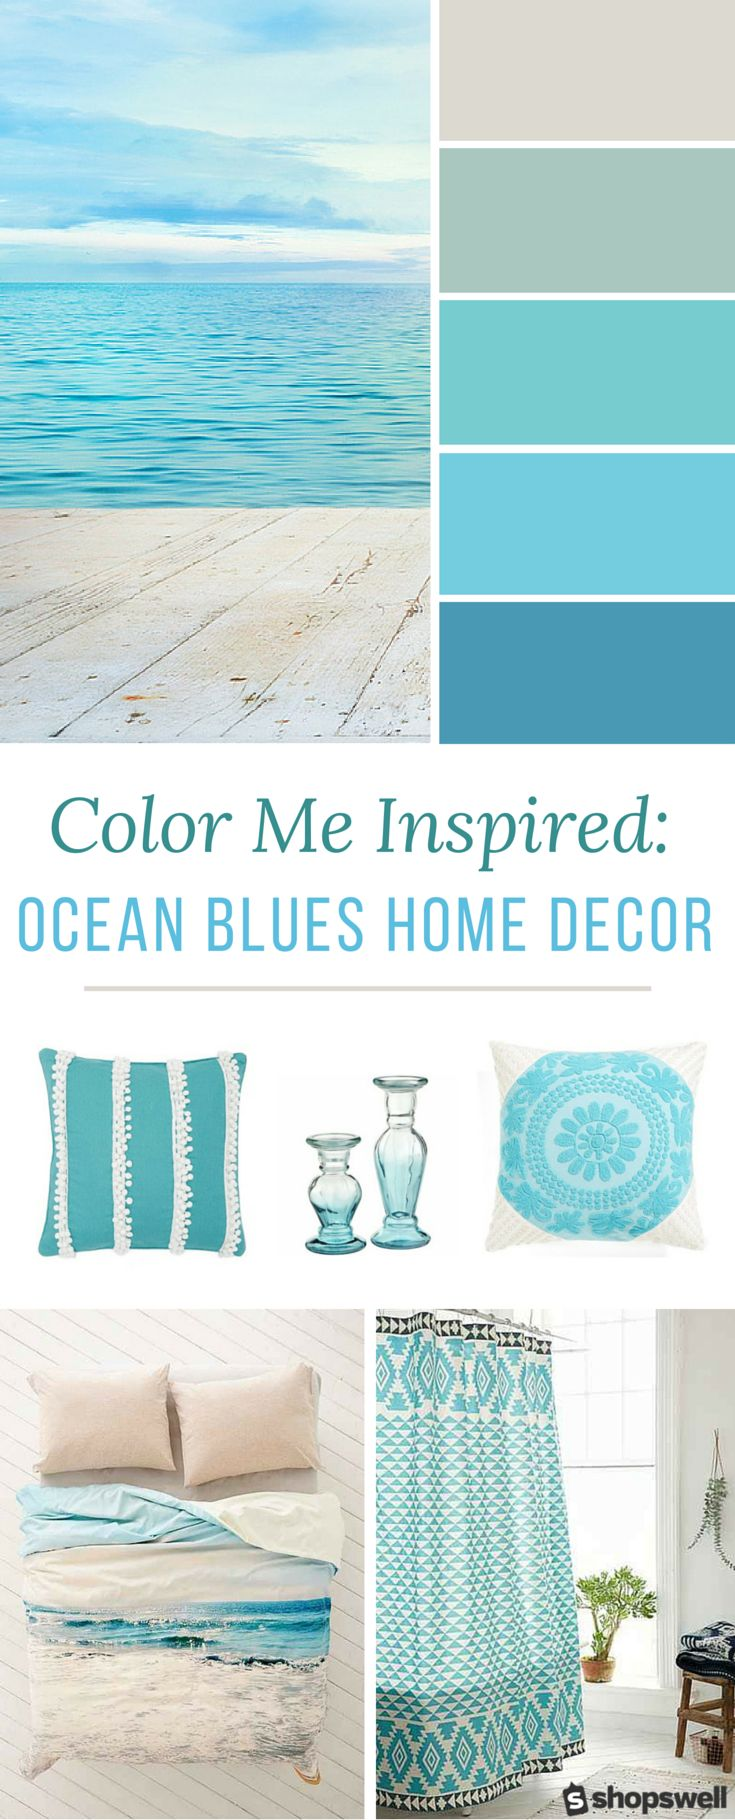 color me inspired ocean blues home decor inspiration beach kitchen decorblue bathroom - Bathroom Decorating Ideas Blue Walls